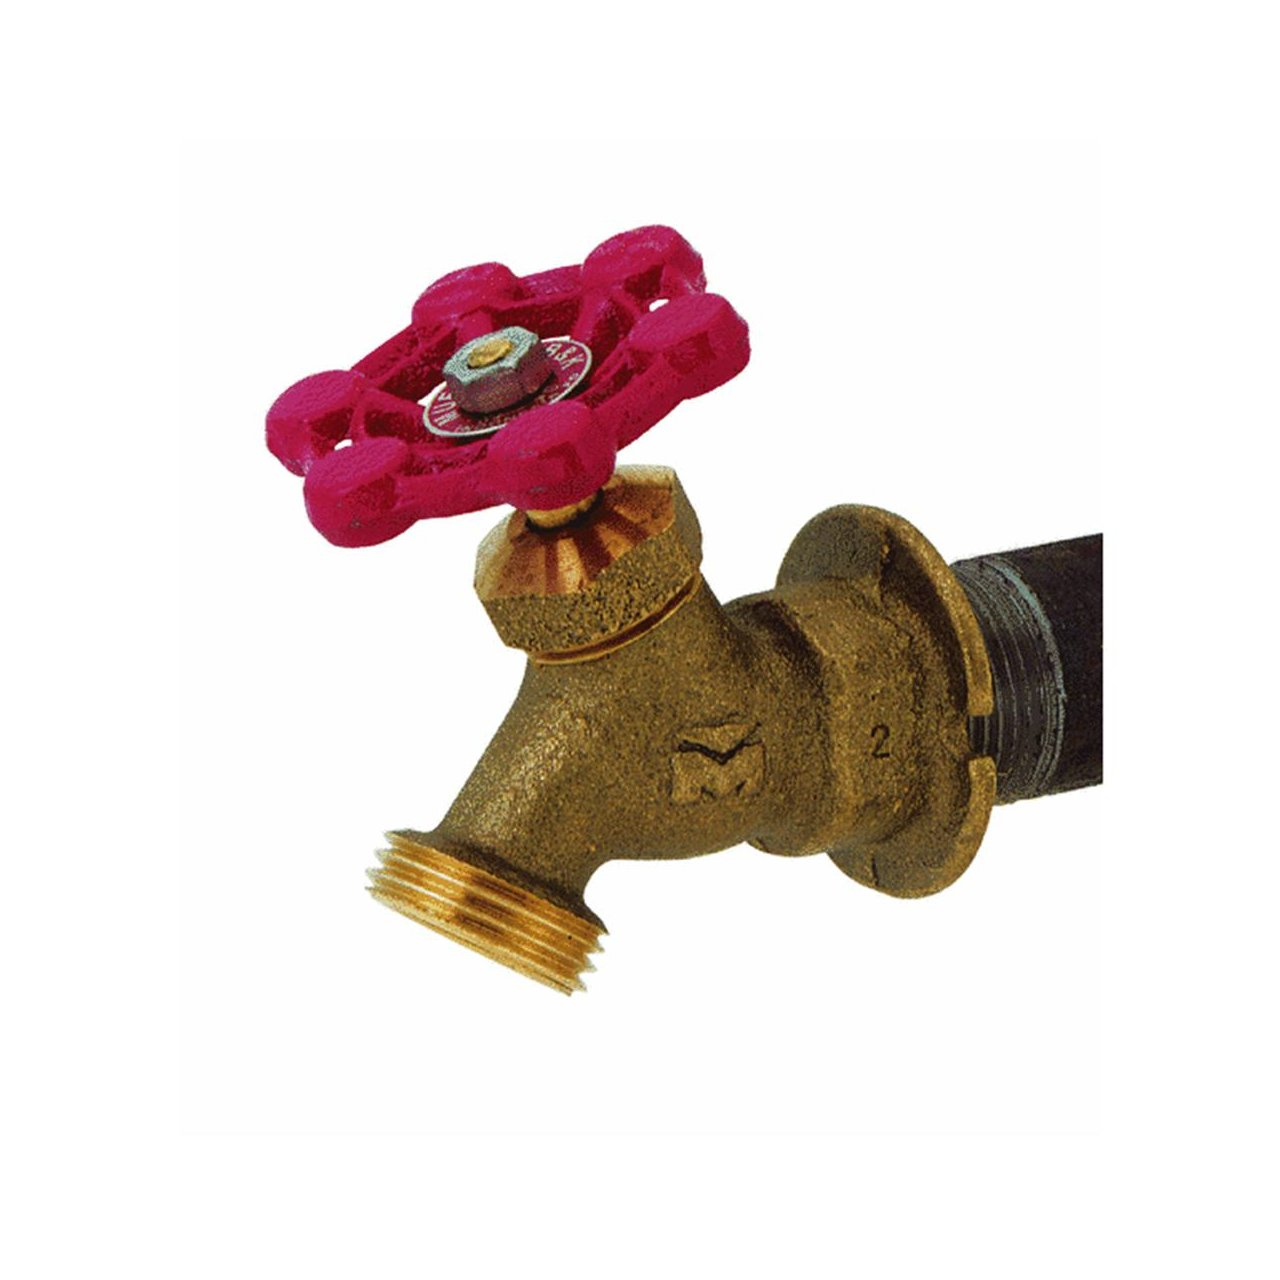 hose adapter with faucets one outdoor you garden spigot faucet allows convert x proportions to regard y extension